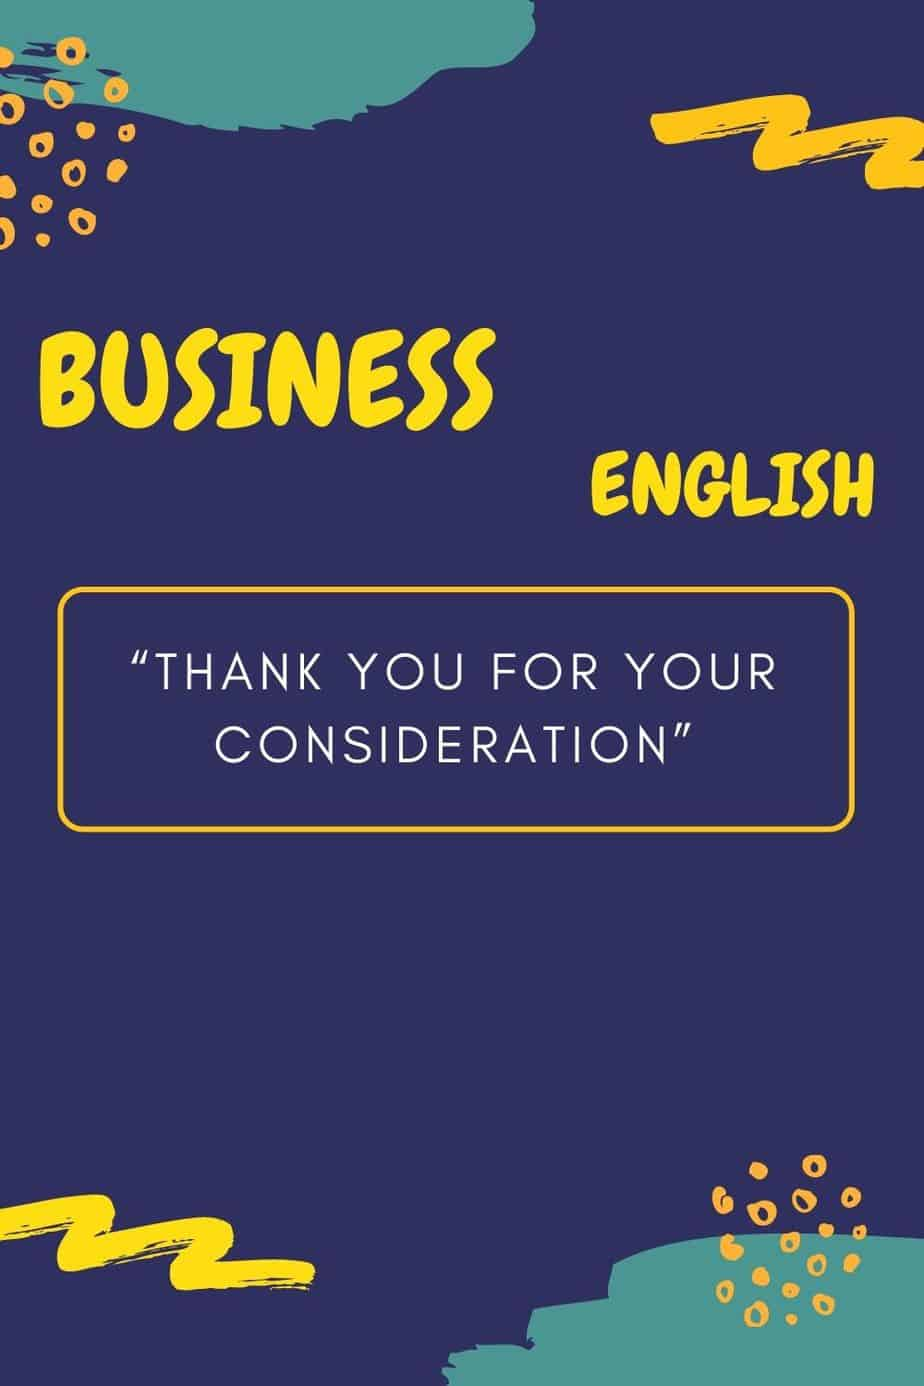 Business ENGLISH Thank you for your consideration_